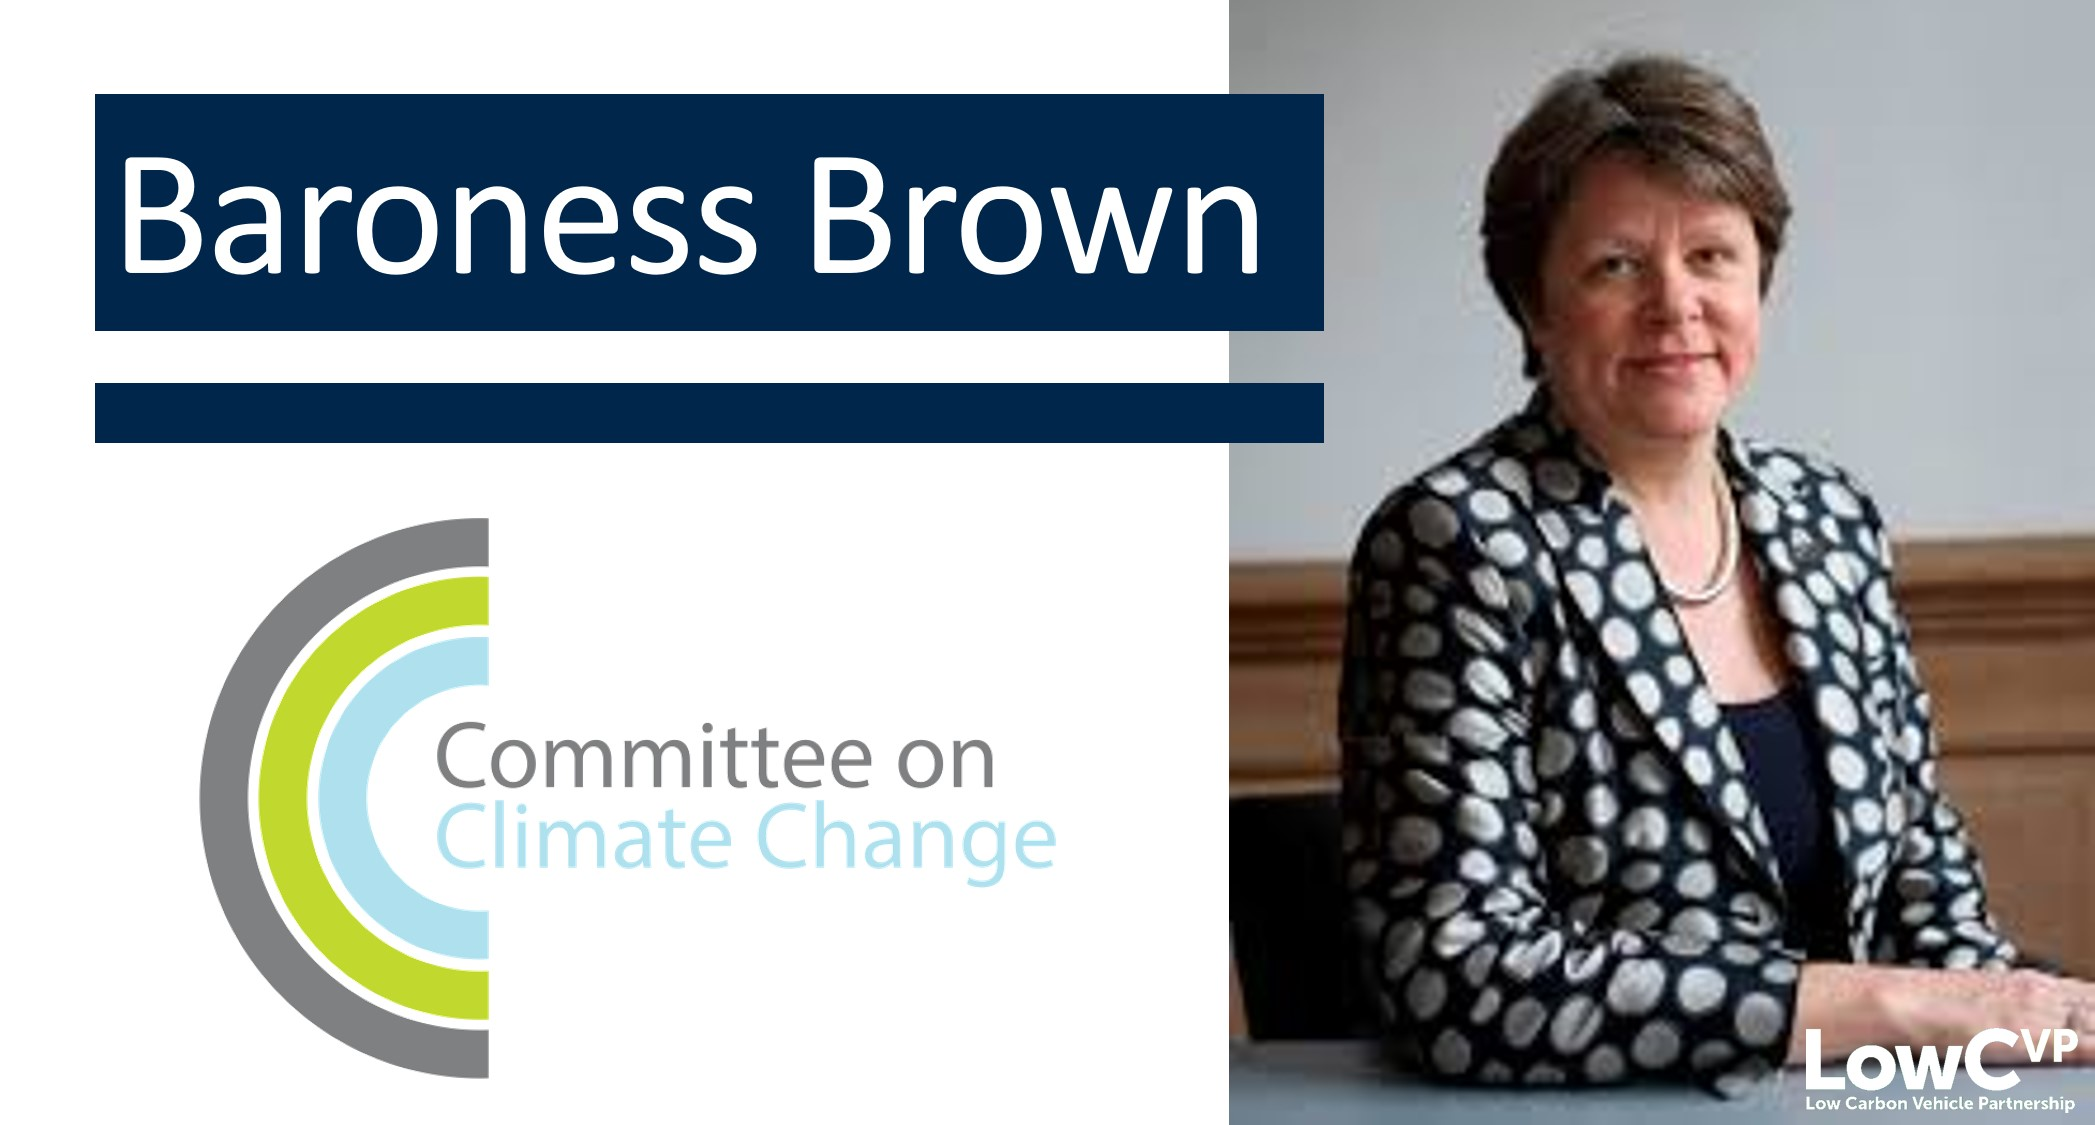 Baroness Brown of Cambridge, Committee on Climate Change